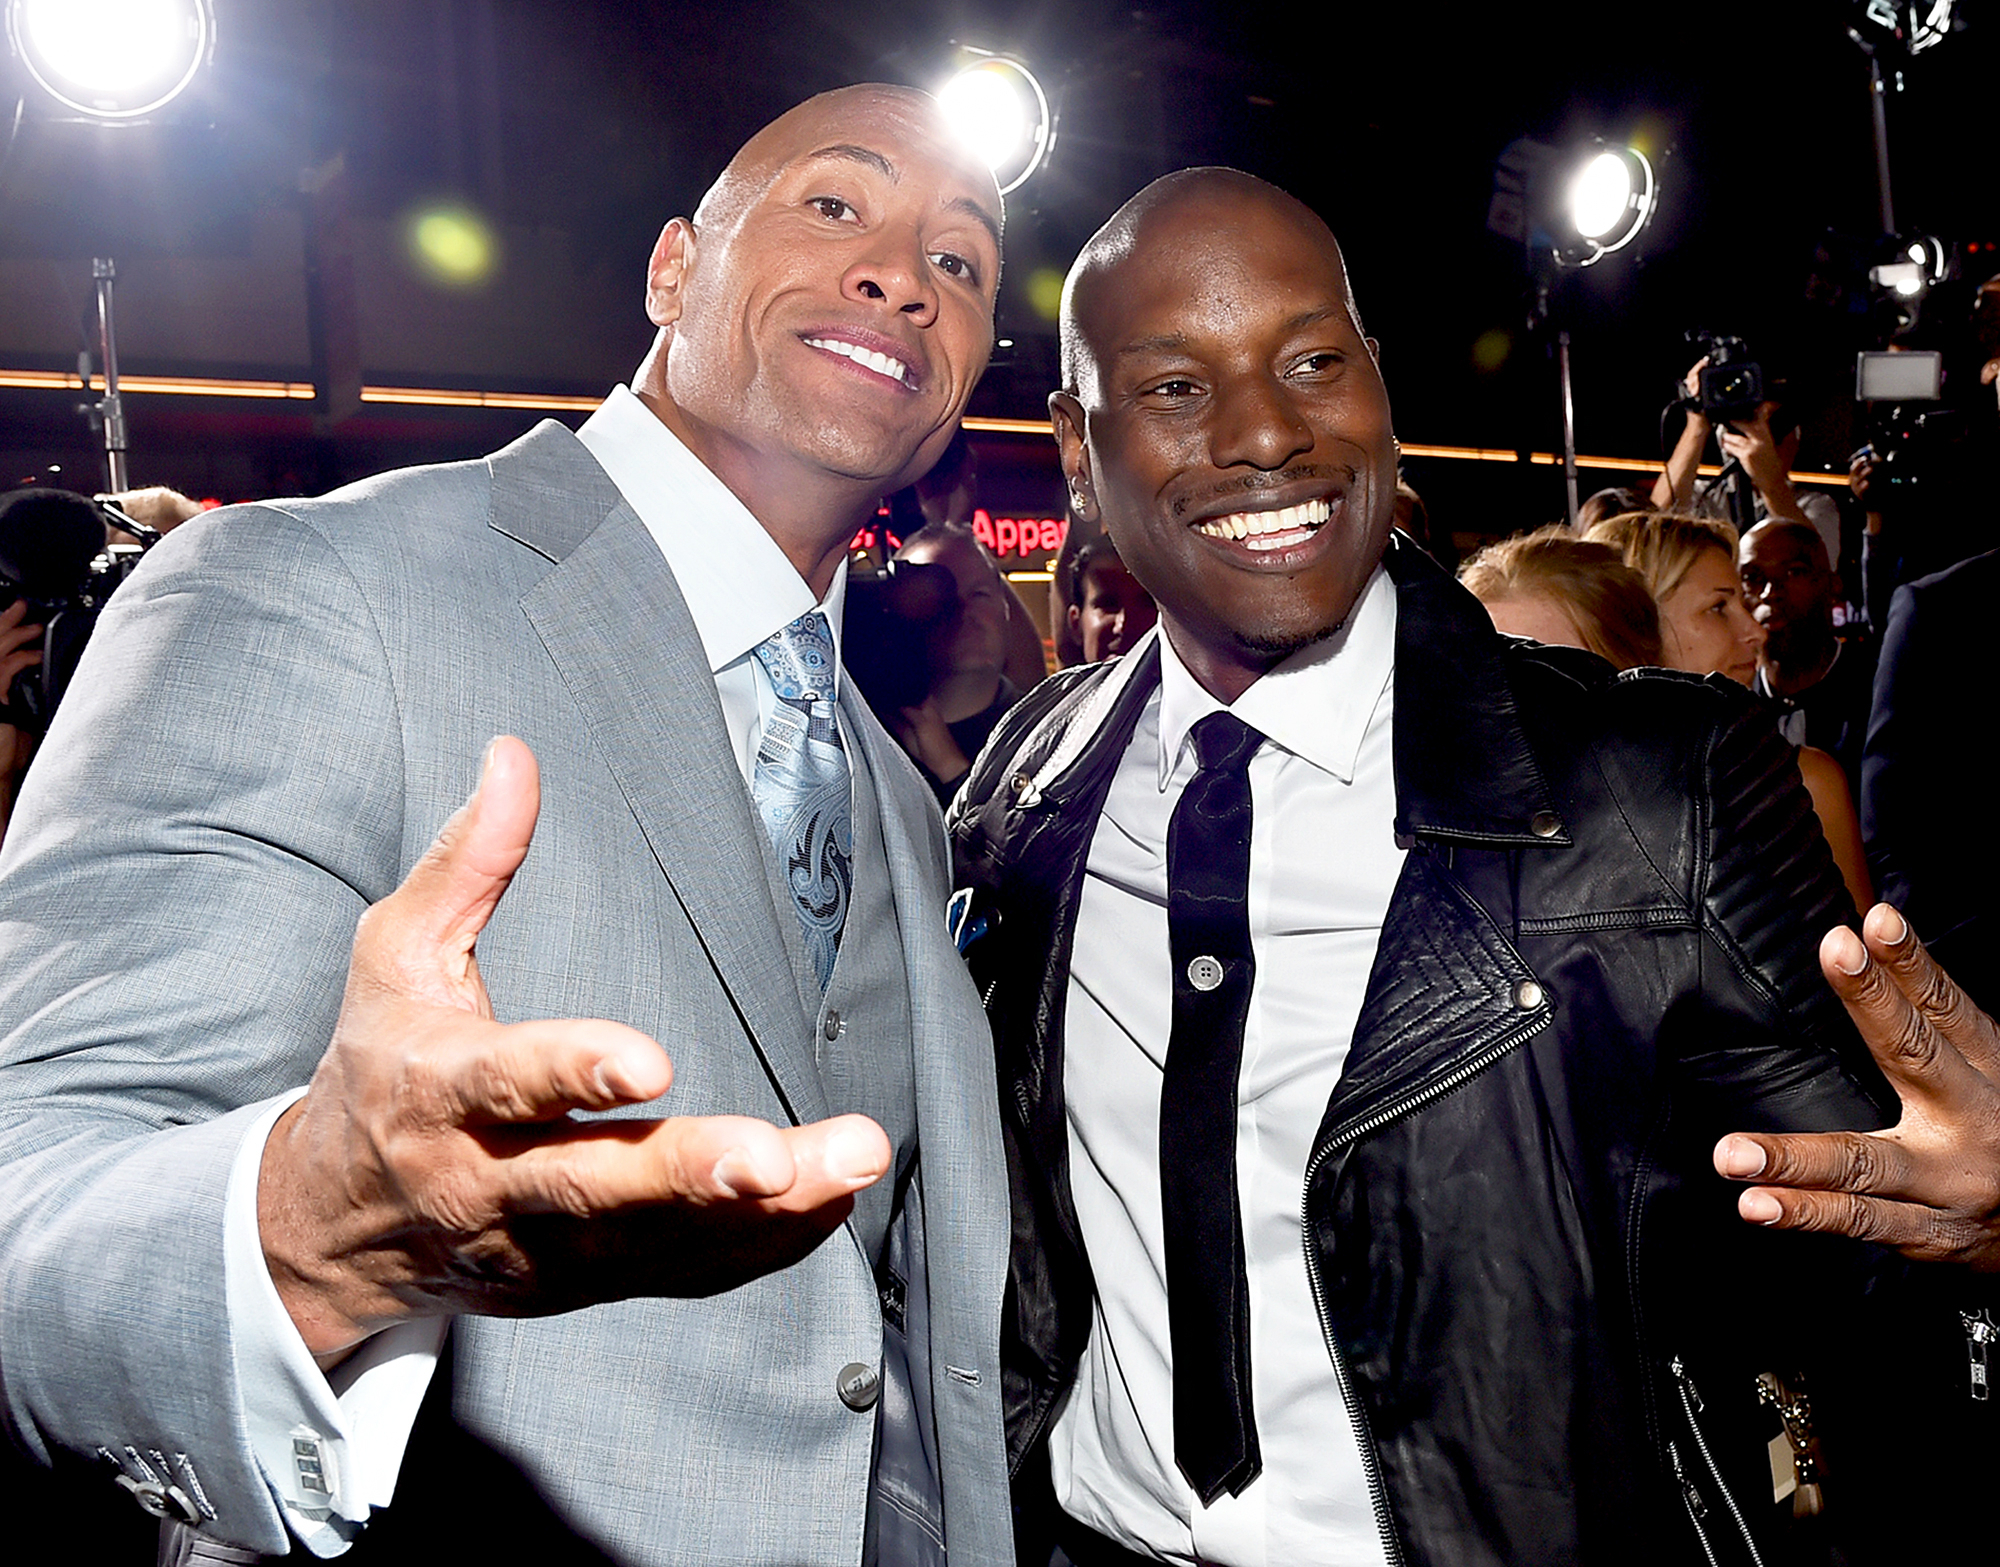 Dwayne 'The Rock' Johnson and Tyrese Gibson